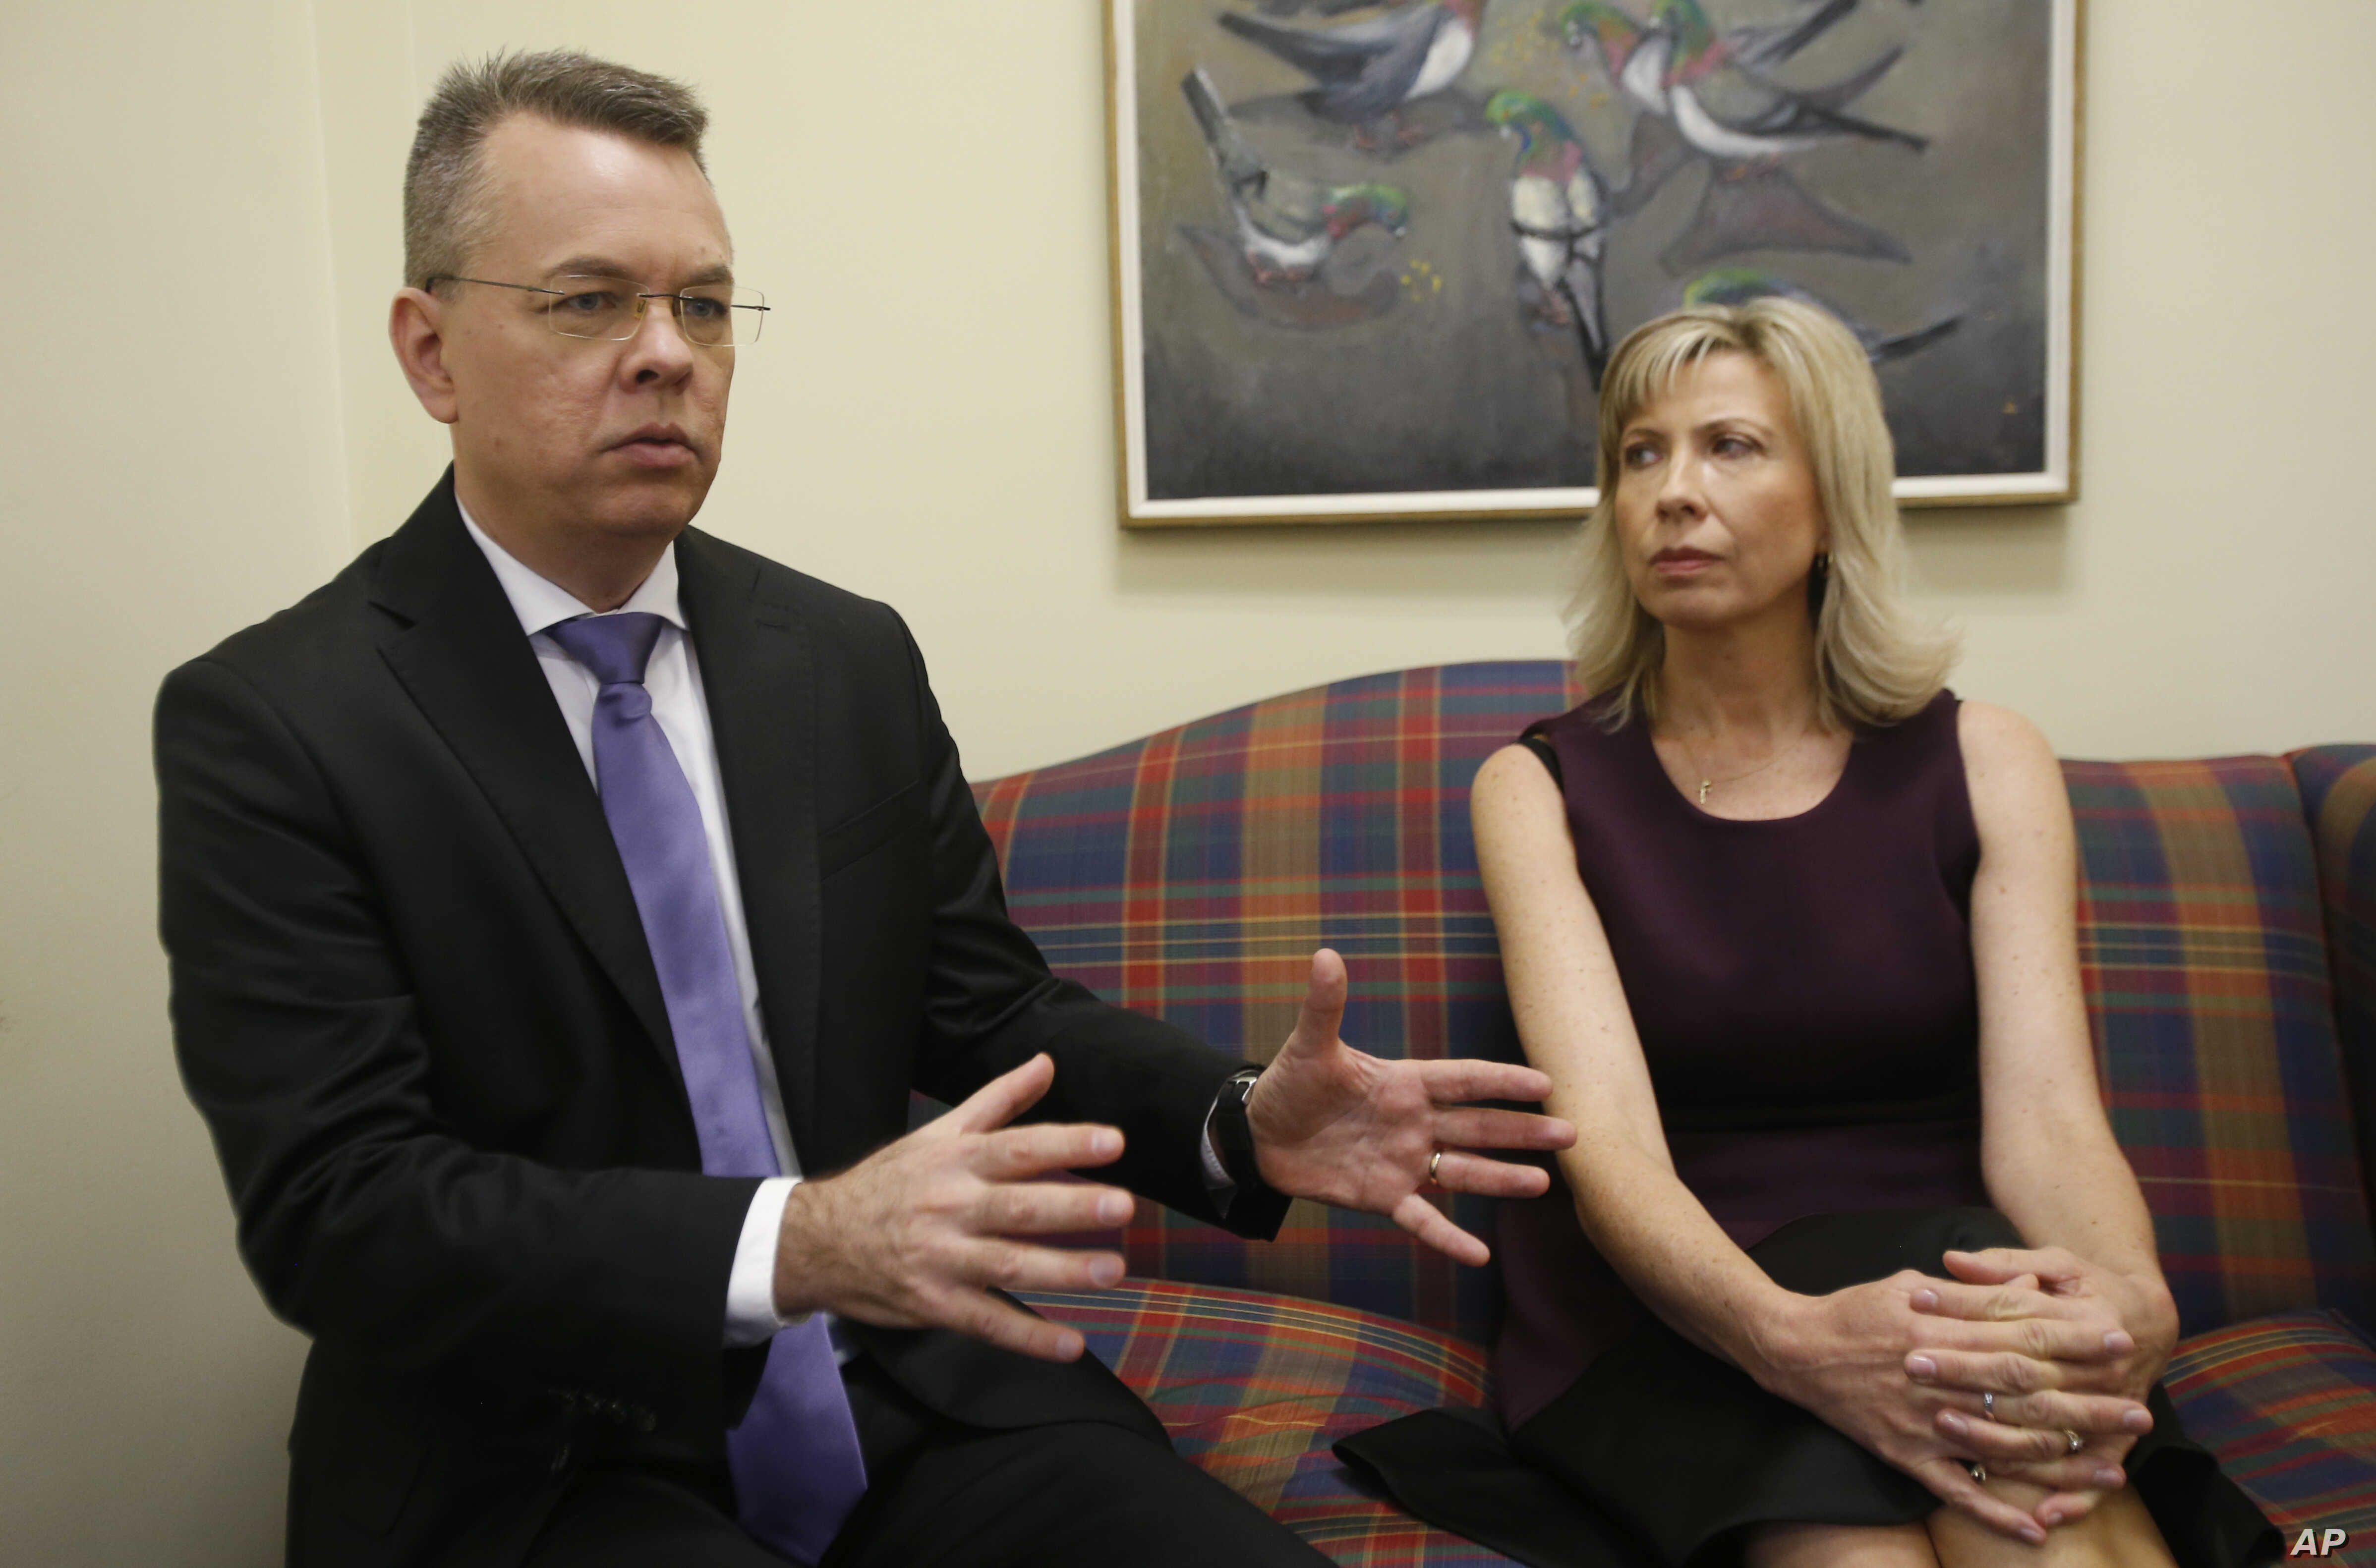 Pastor Andrew Brunson, left, gestures as his wife, Norine, listens during an interview at the headquarters of Christian Broadcasting Network in Virginia Beach, Va., Oct. 19, 2018. Brunson was recently released from prison in Turkey.